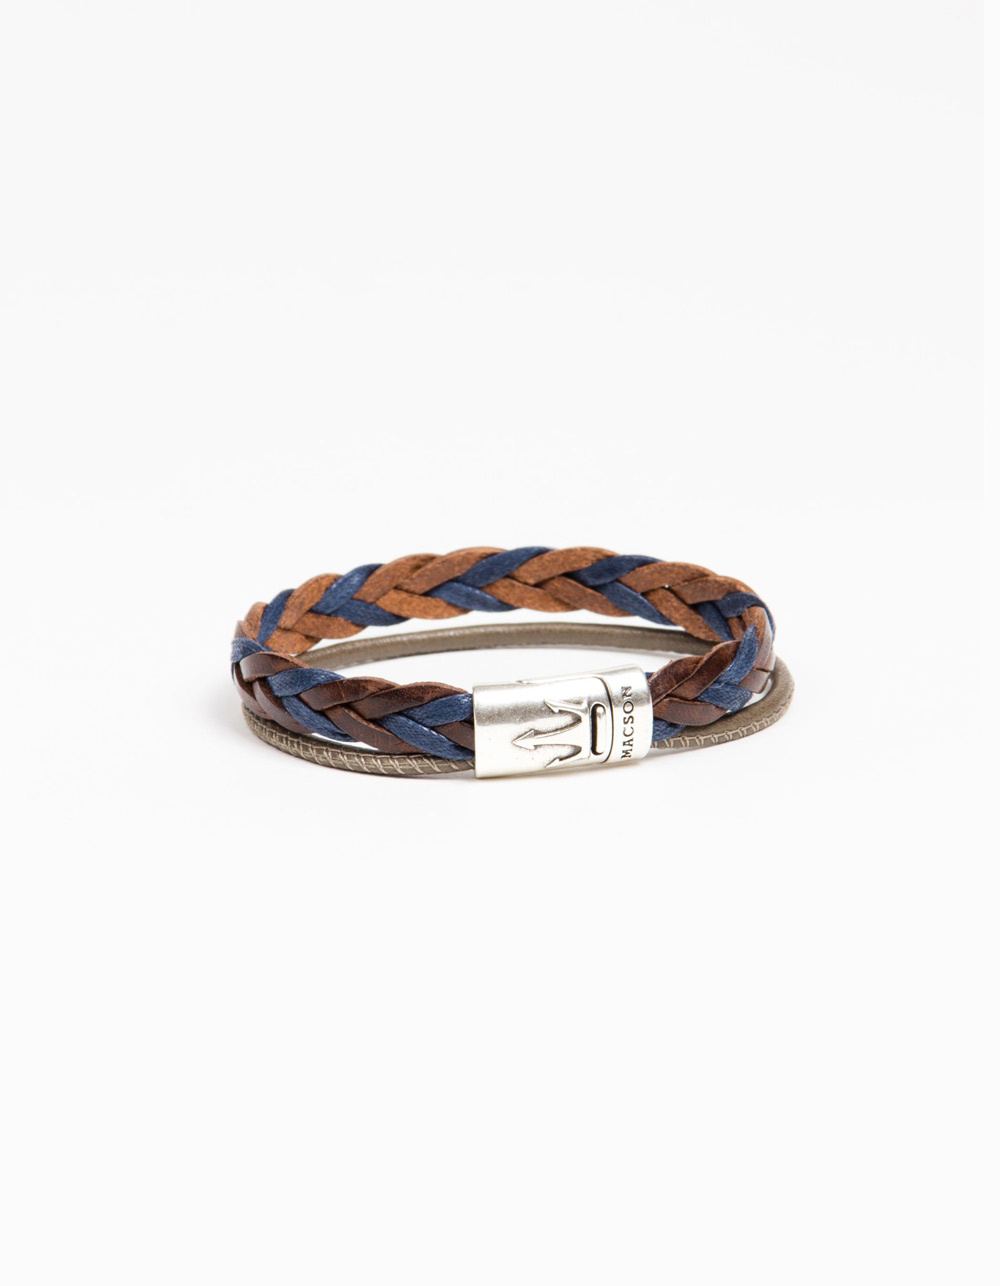 Blue and brown double bracelet